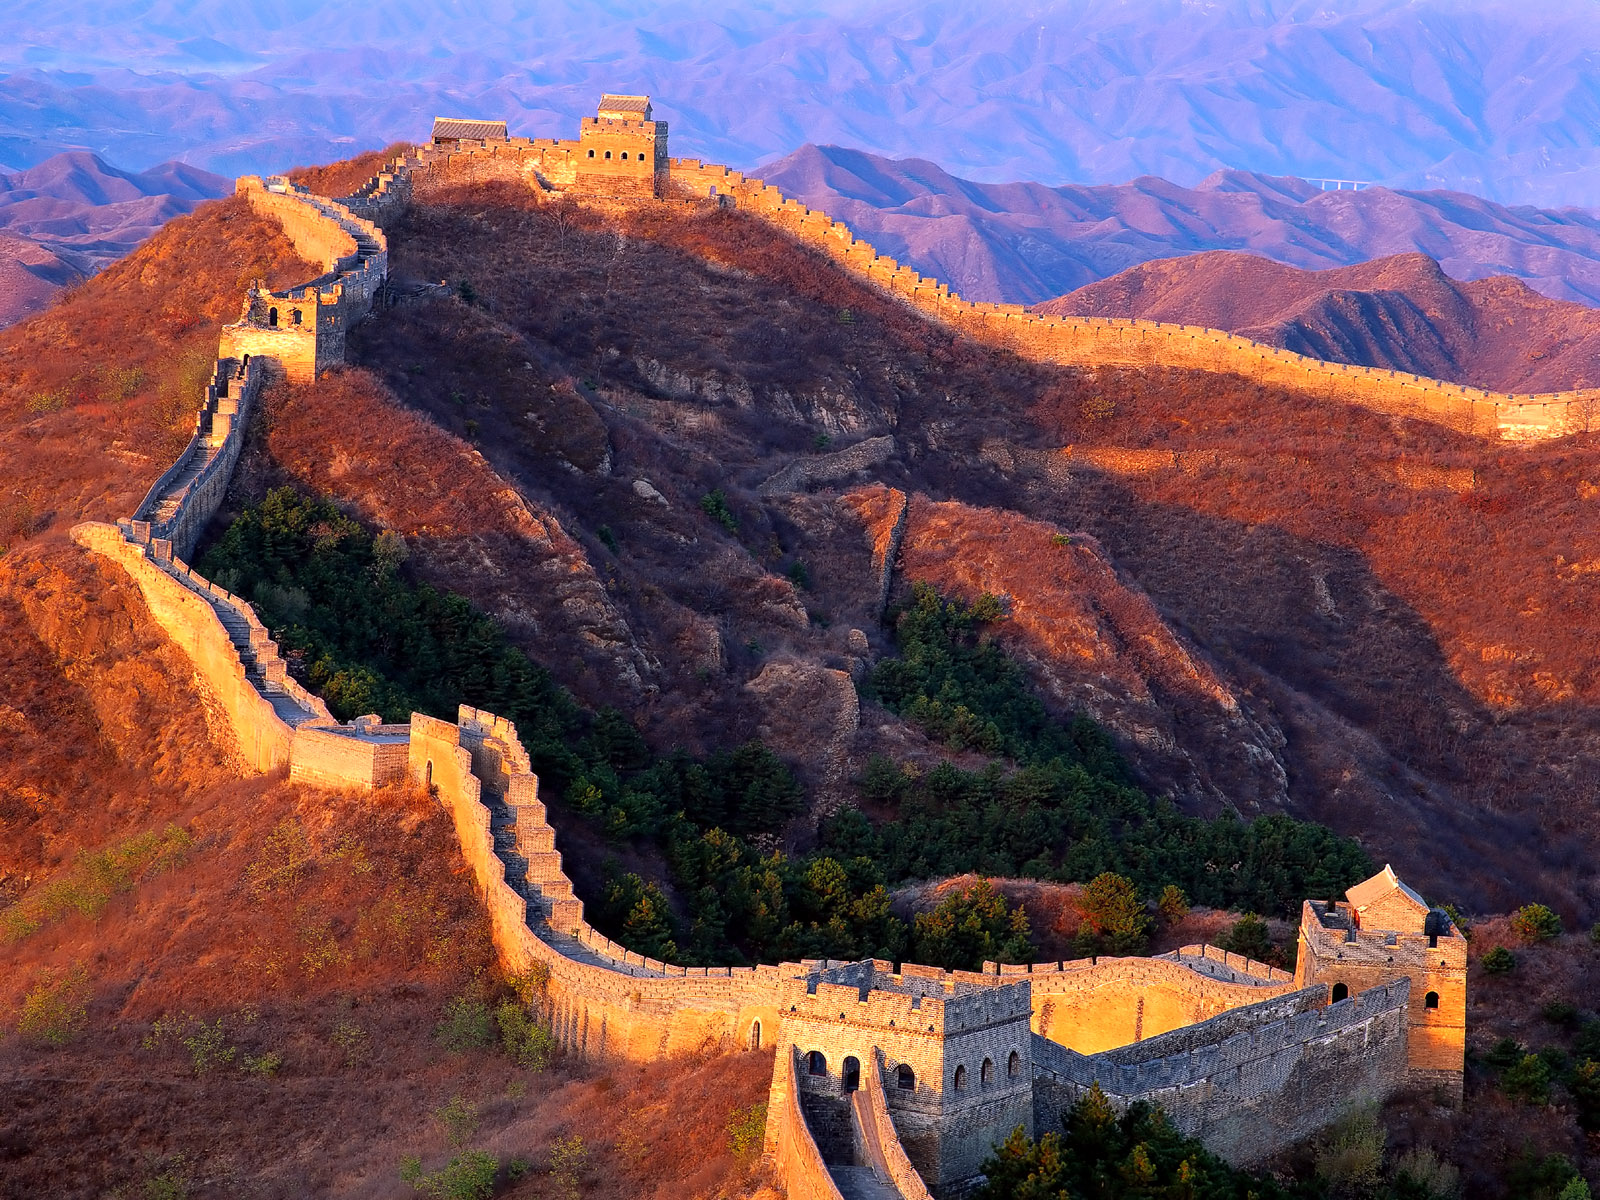 CoolPictureGallery: Great wall of china wallpaper.